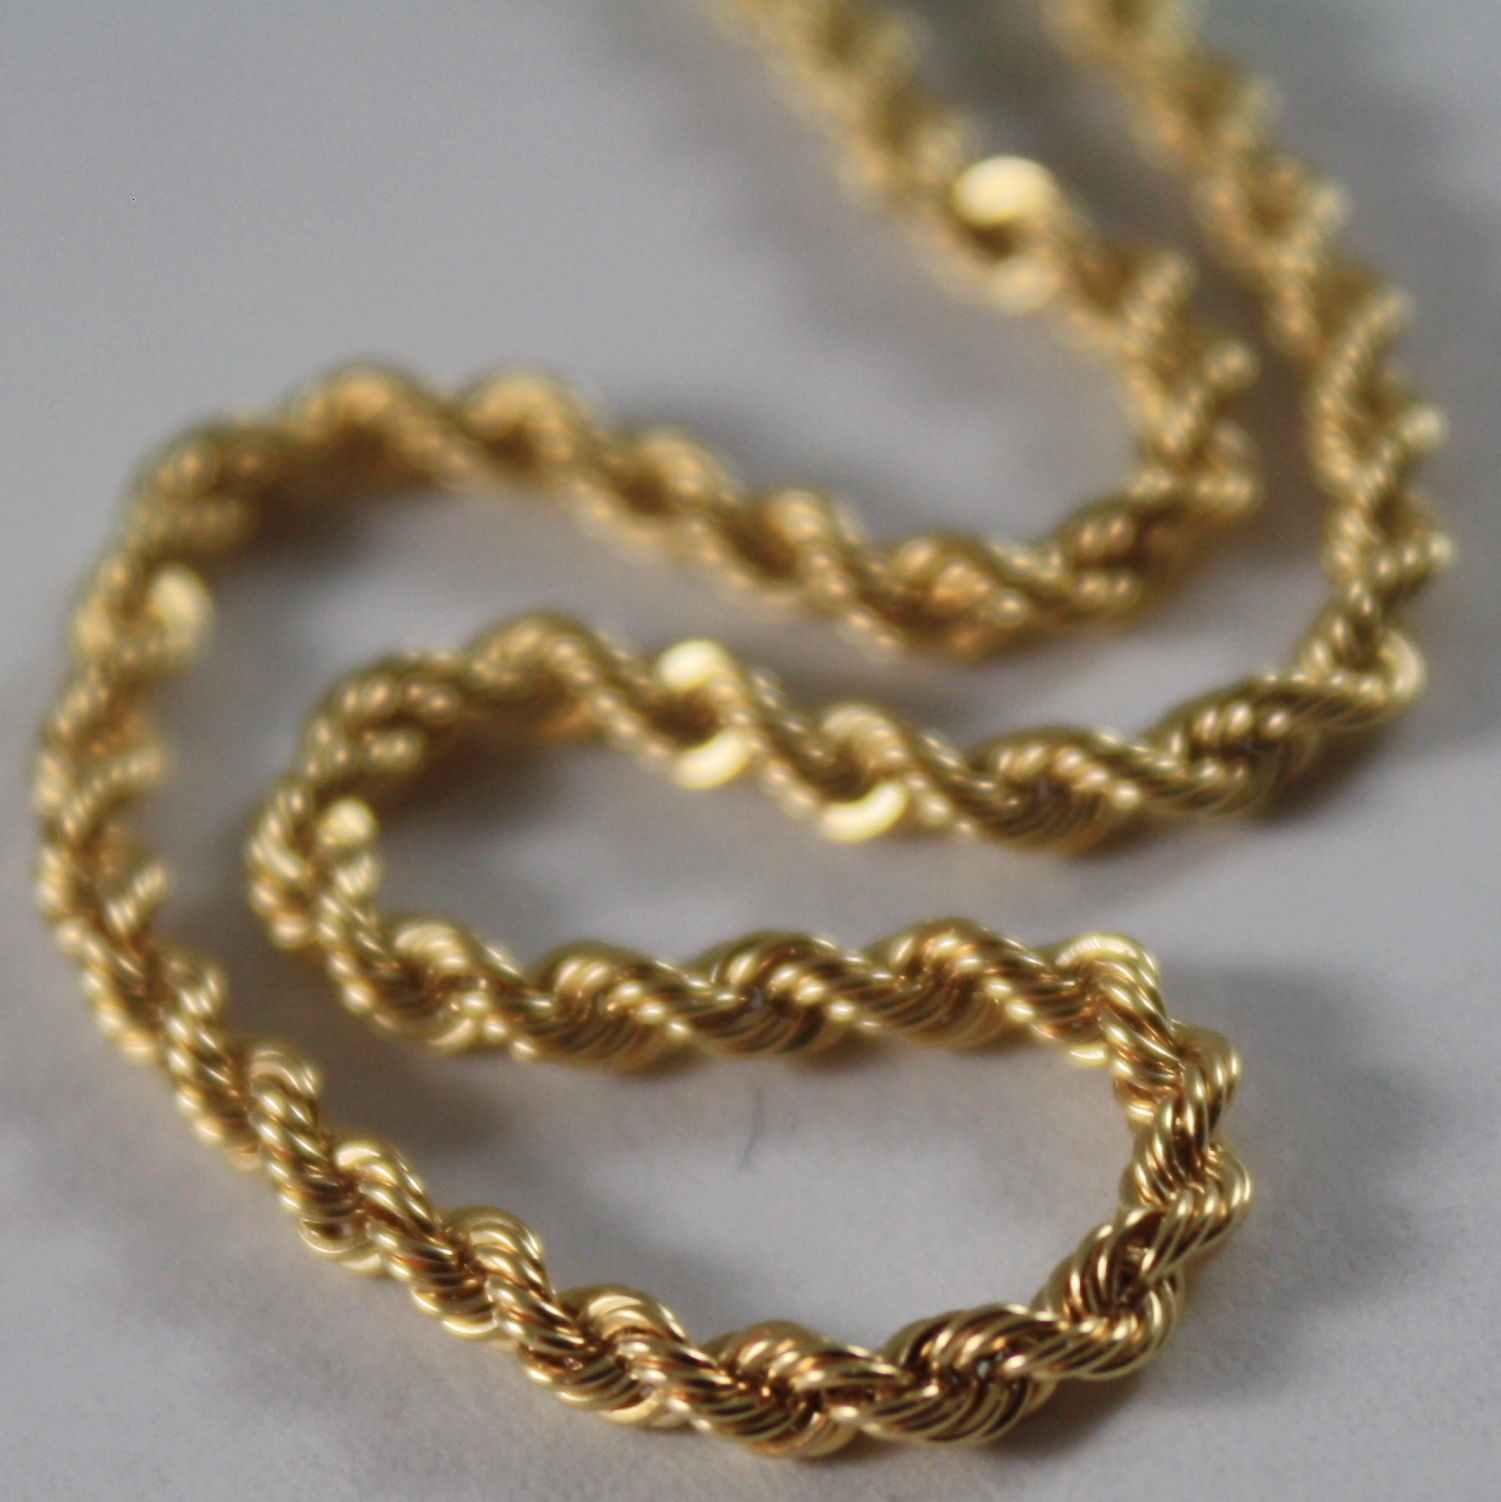 18K YELLOW GOLD CHAIN NECKLACE, BRAID ROPE LINK 15.75 INCHES, MADE IN ITALY